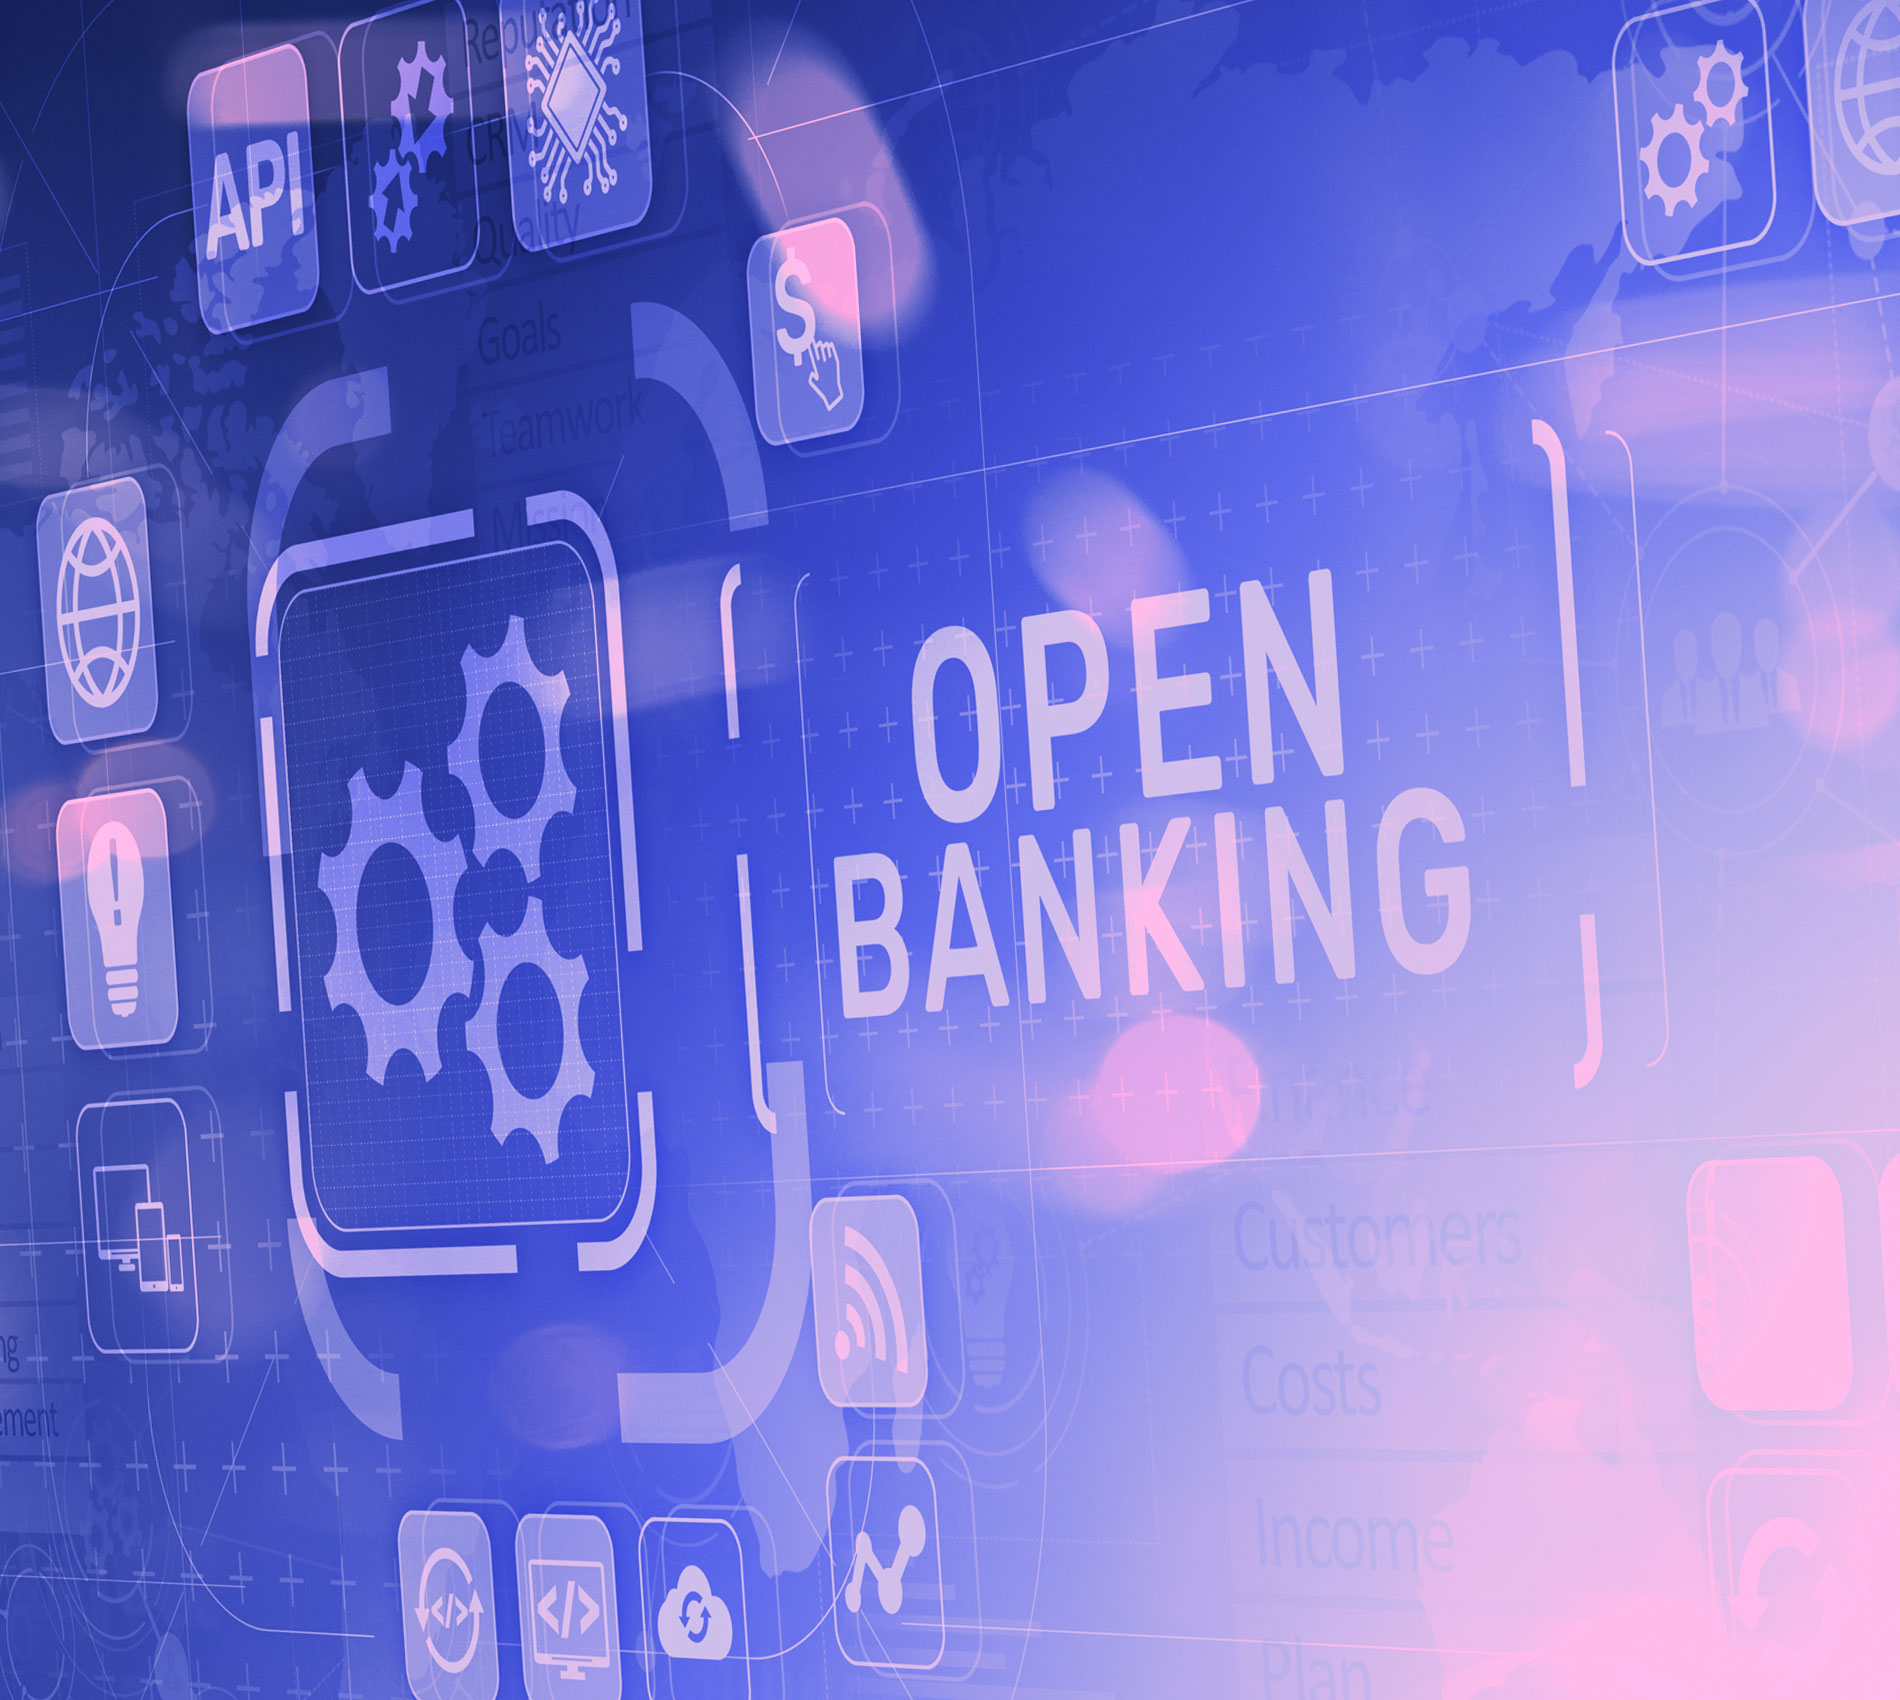 Brazil initiates first phase of Open Banking